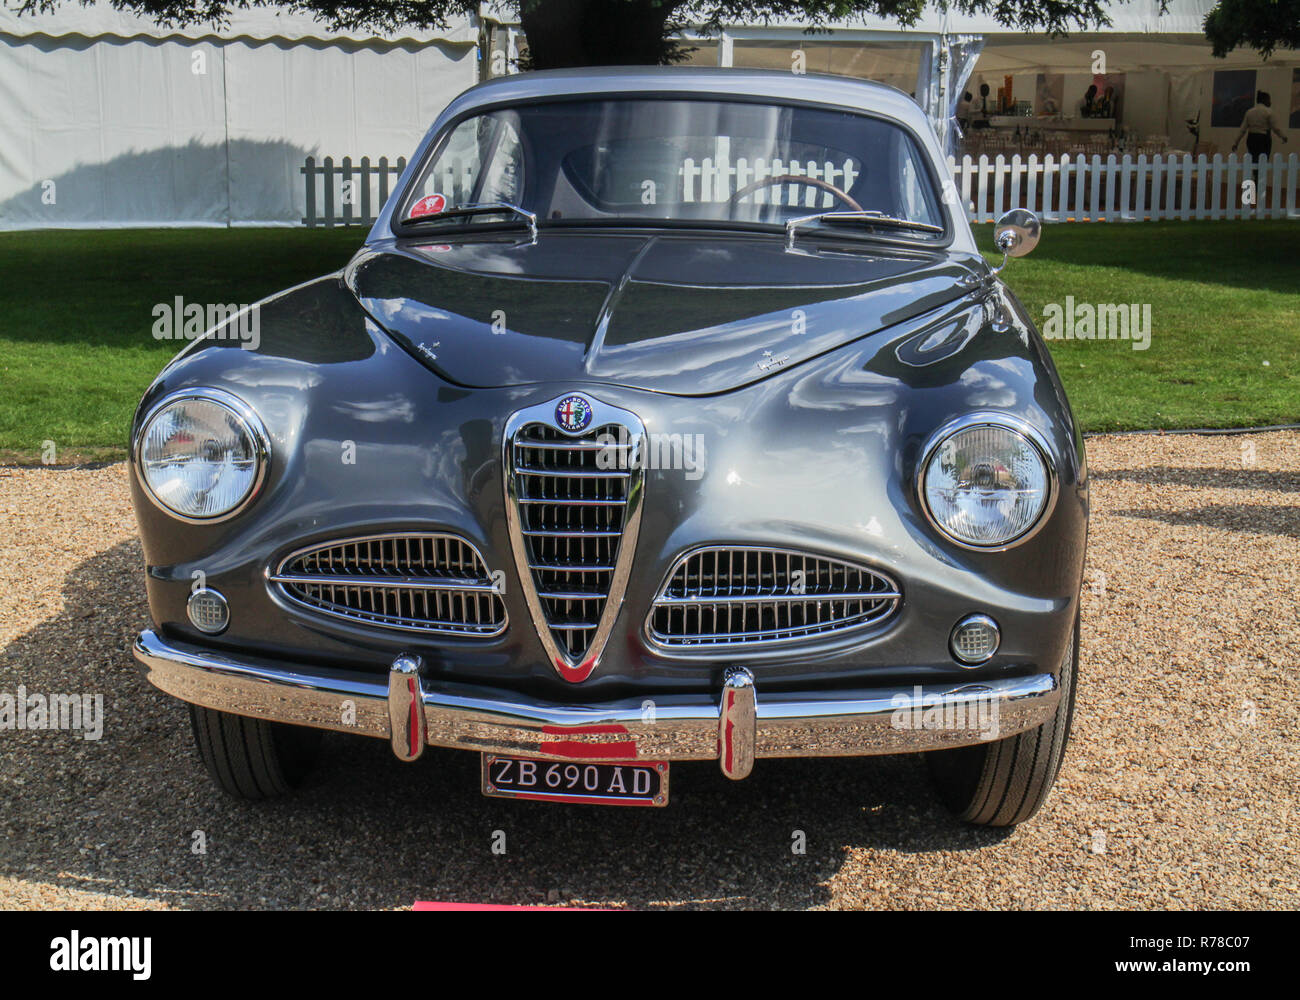 A 1952 Alfa Romeo 1900  'Pre - series' Sprint Coupe at the Concours of Elegance 2018 at Hanpton Court Palace, East Molesey, Surrey - Stock Image